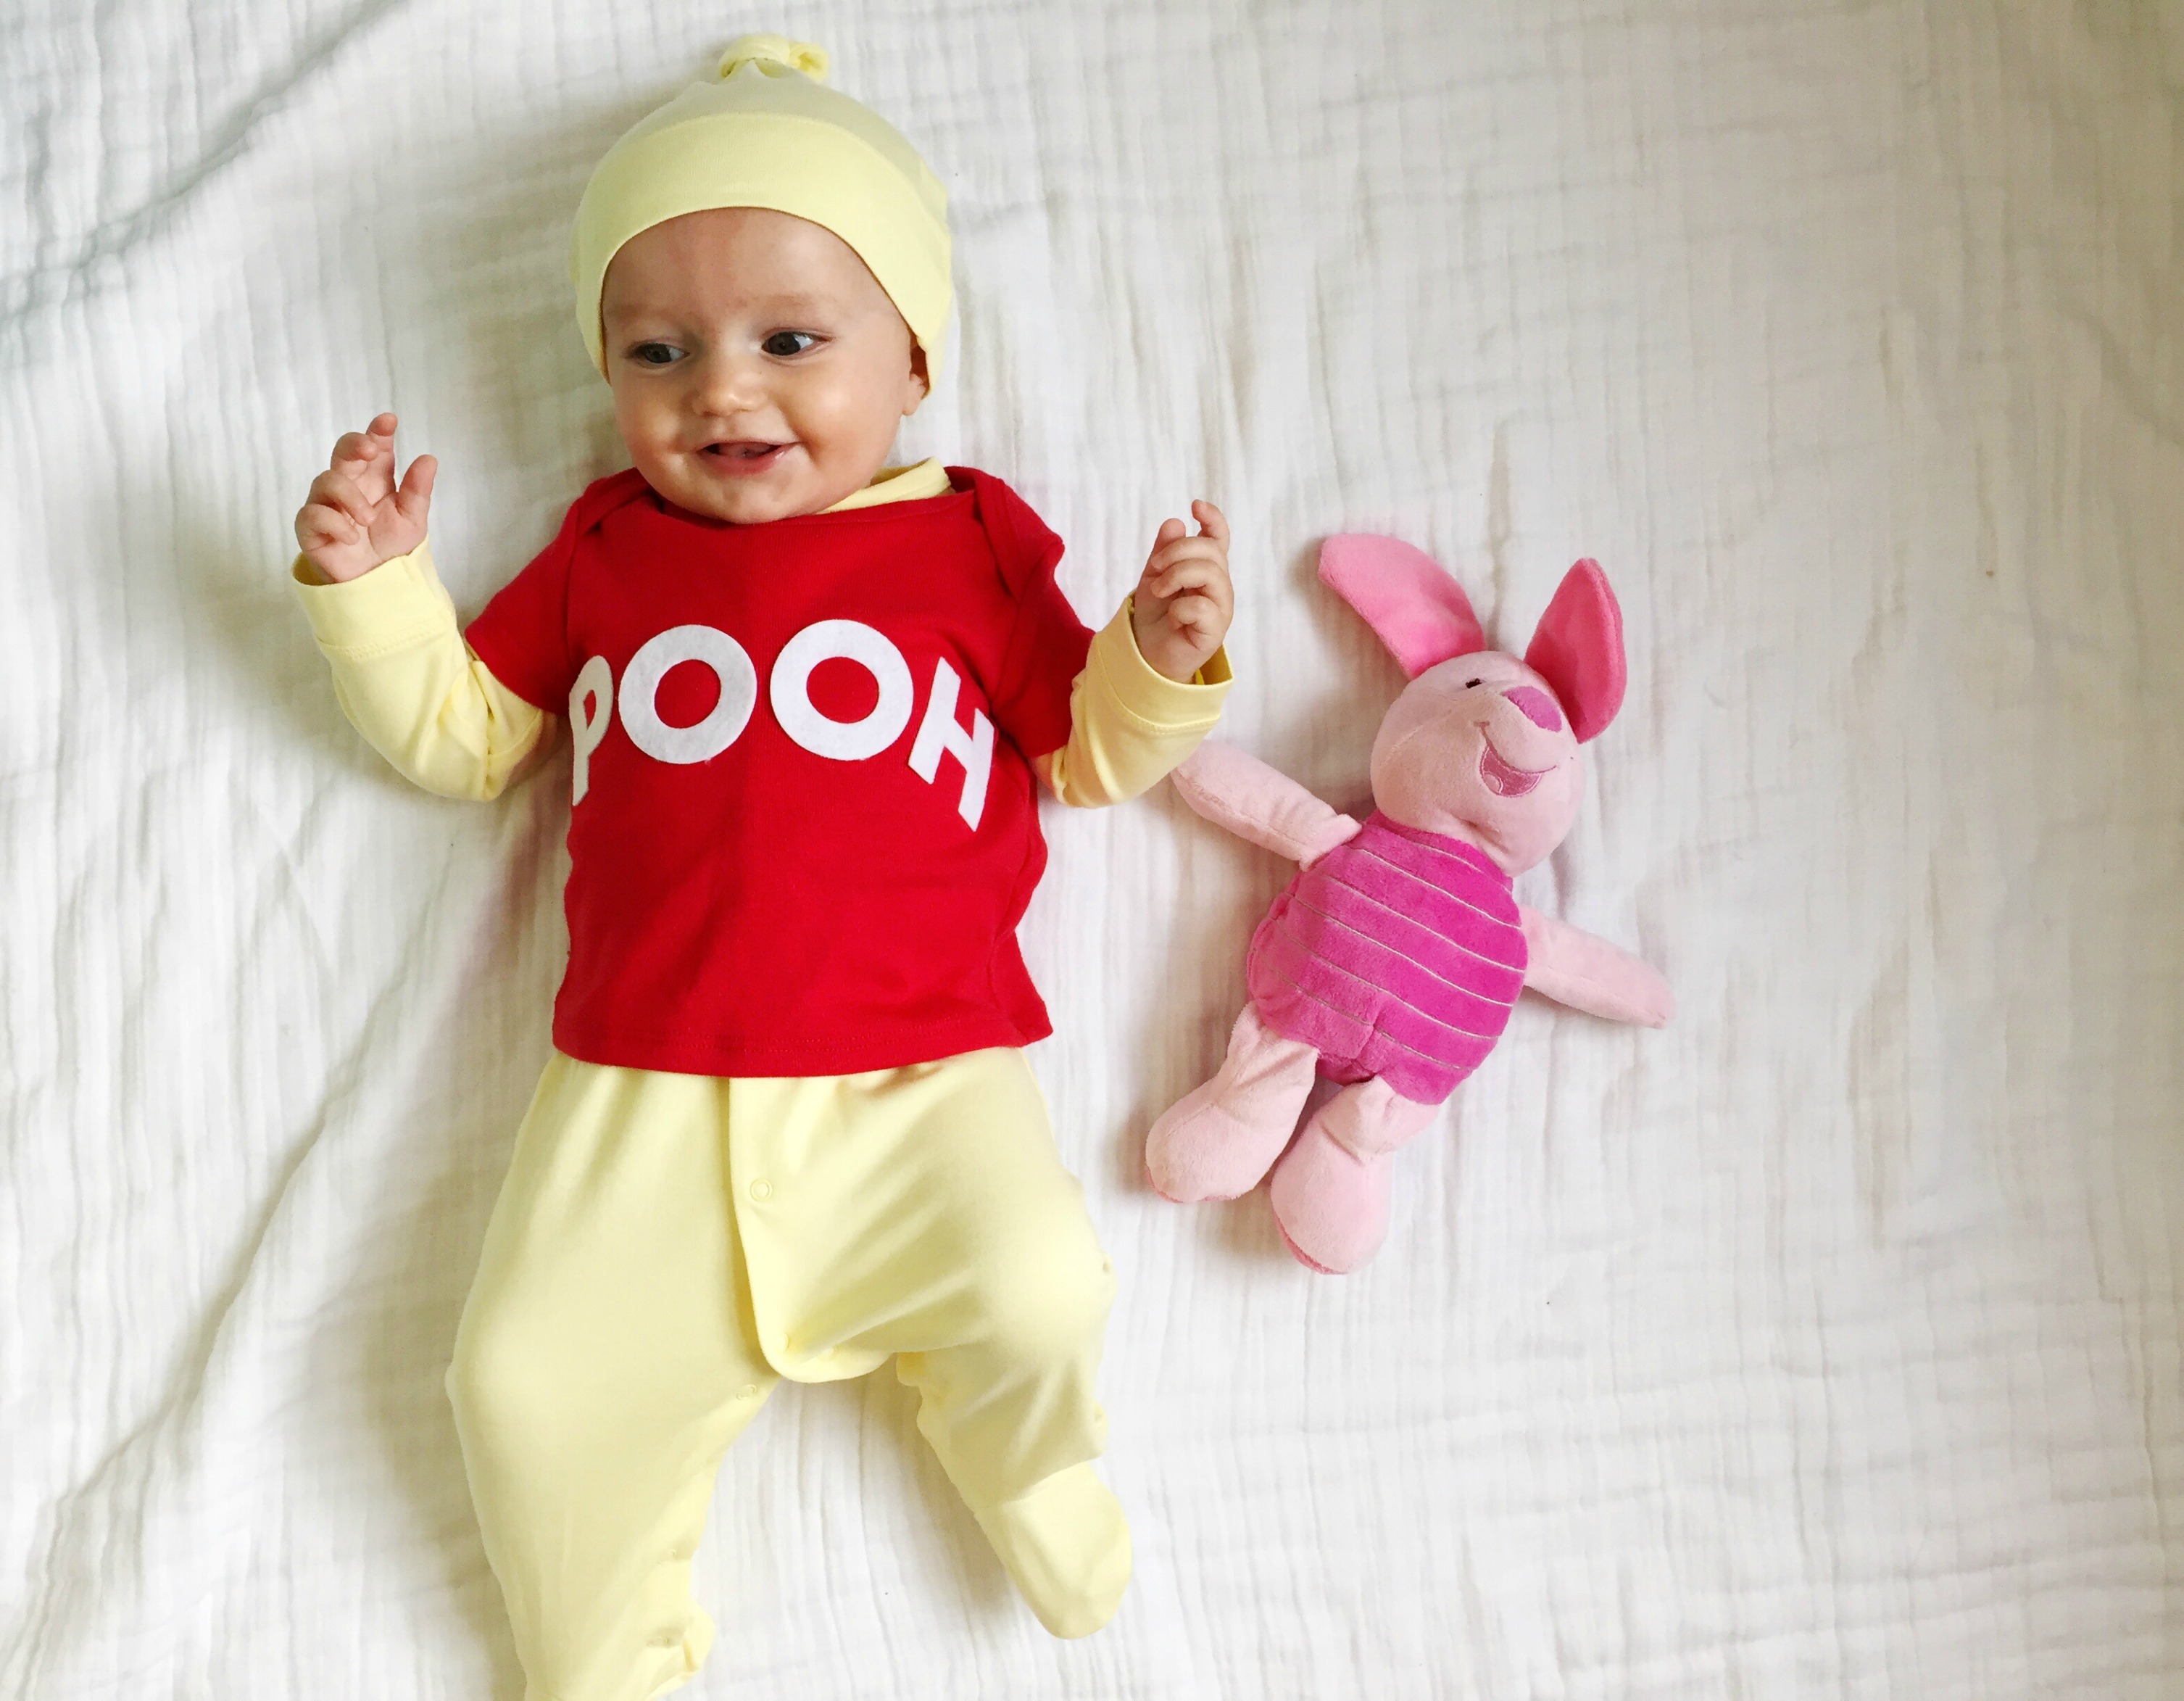 sc 1 st  The Chirping Moms & 5 Easy DIY Halloween Costumes for Baby - The Chirping Moms